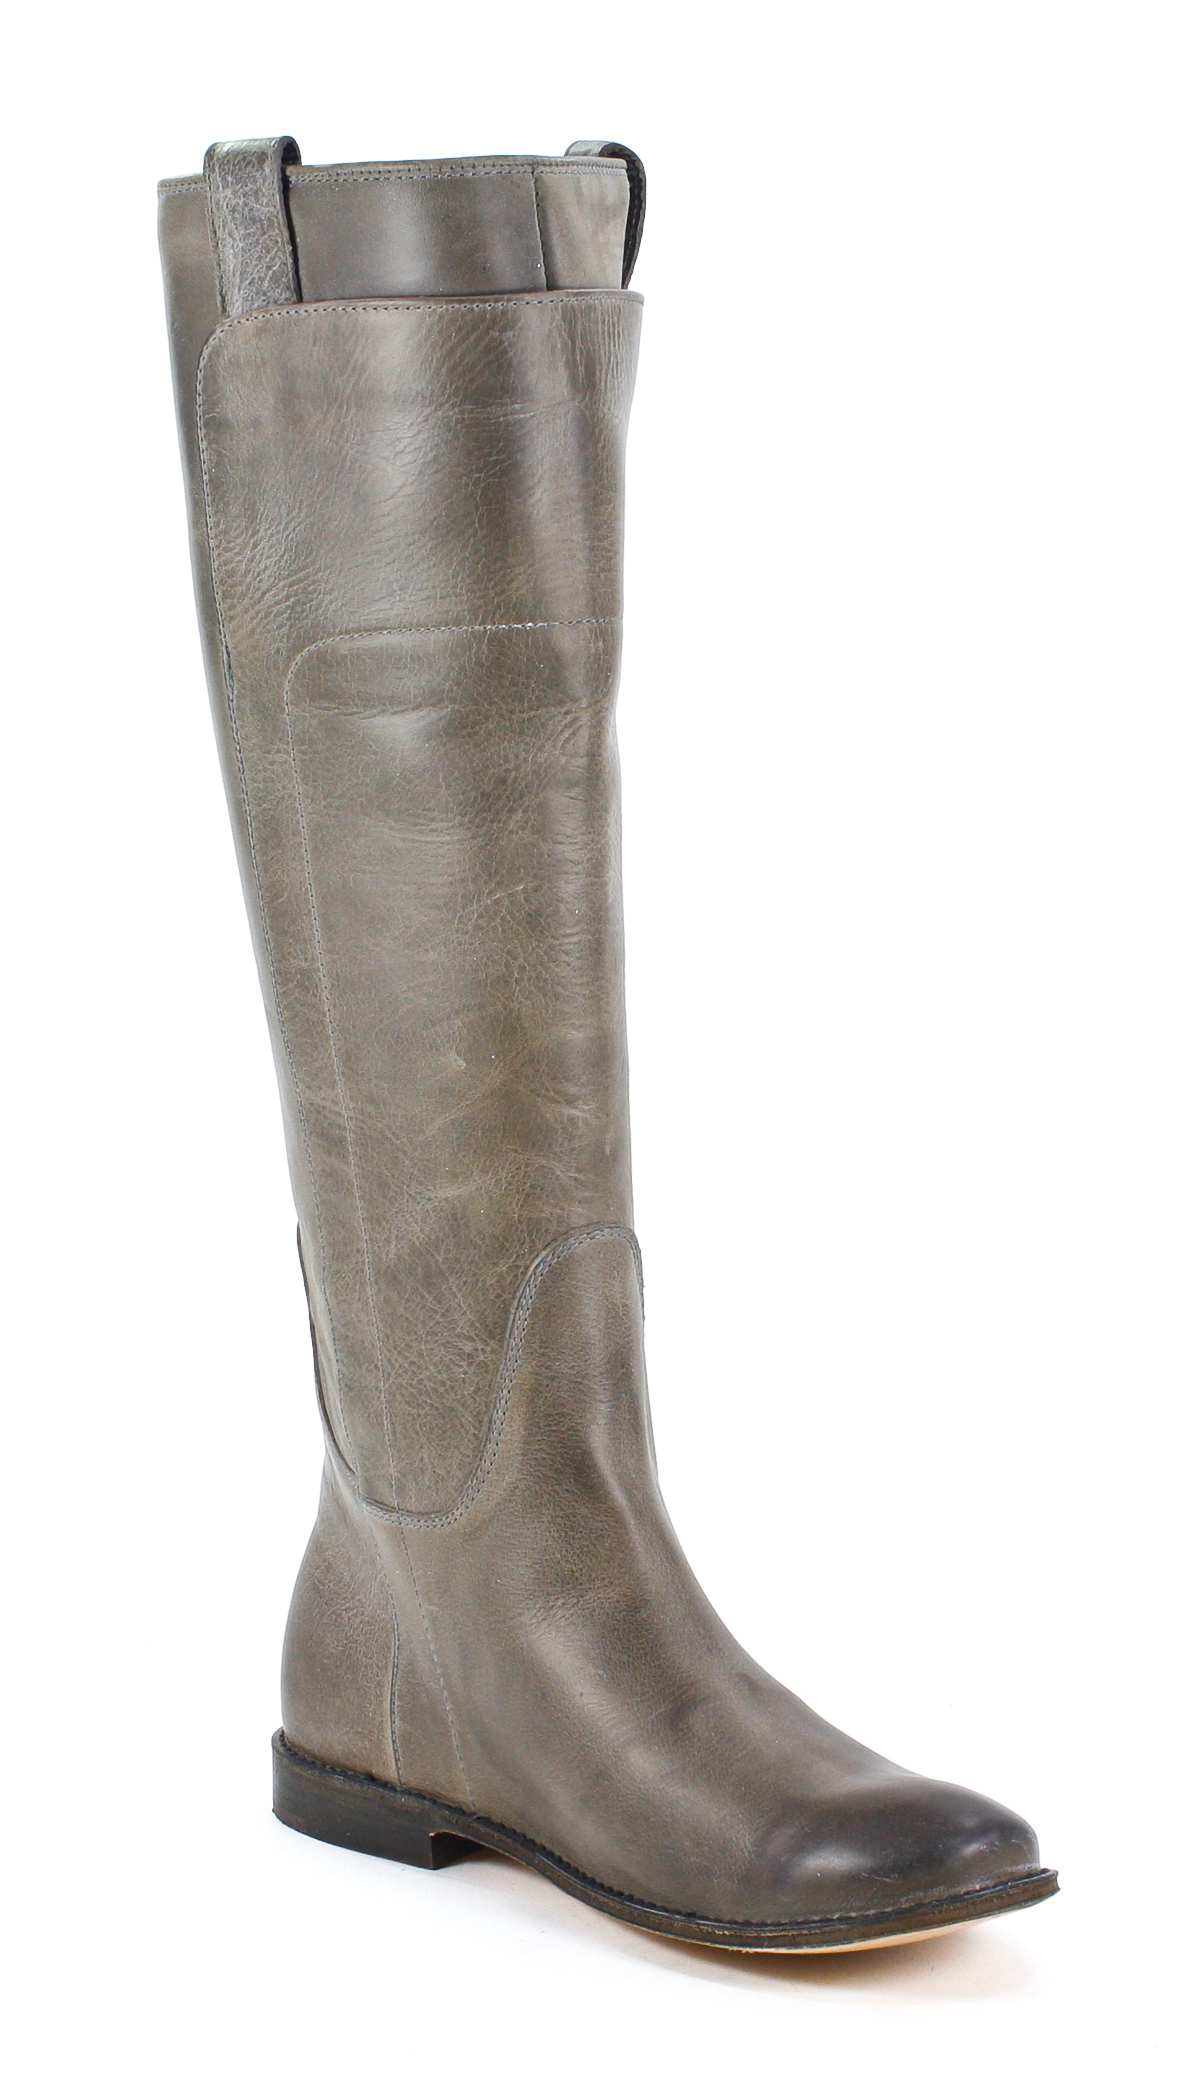 Frye Womens Paige Tall Riding Leather Grey Fashion Boot 9 ...